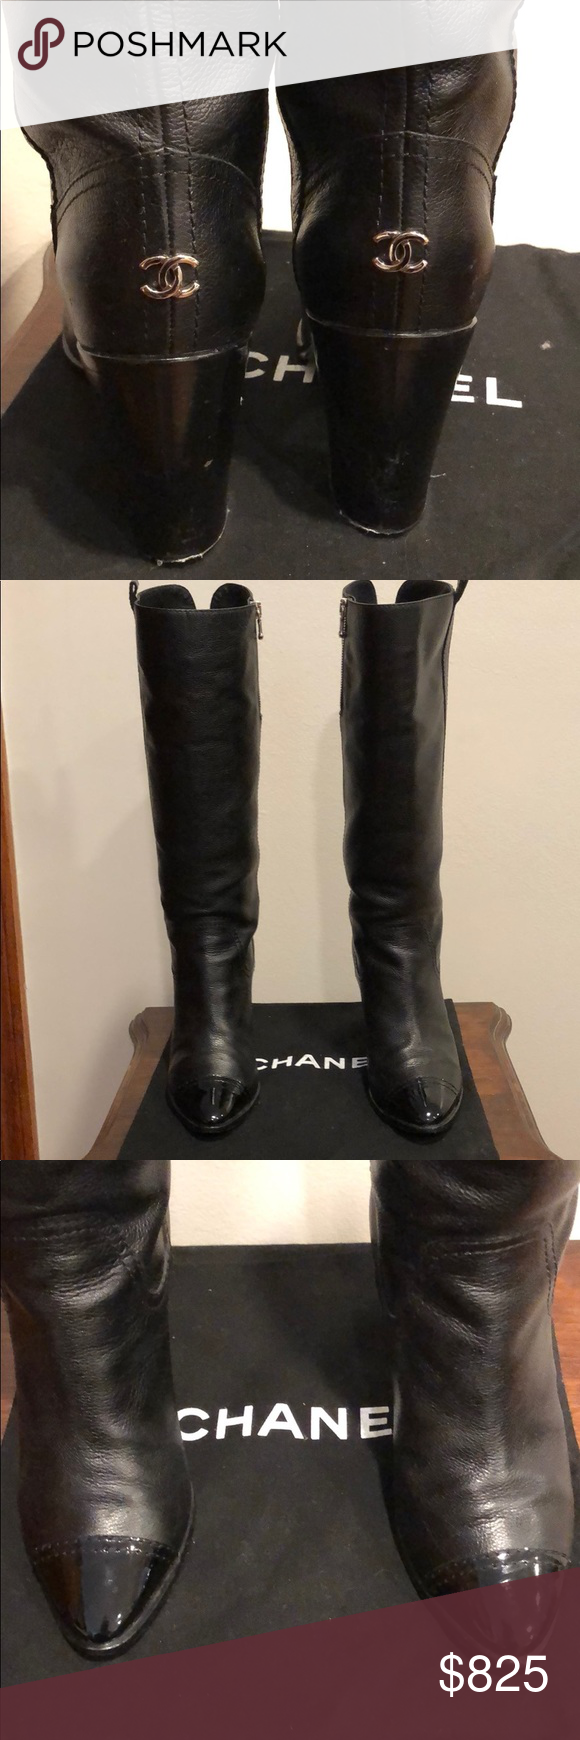 3912c4b1910 Chanel Boots Hello! I am selling a great condition Chanel Knee High Boots  size 38